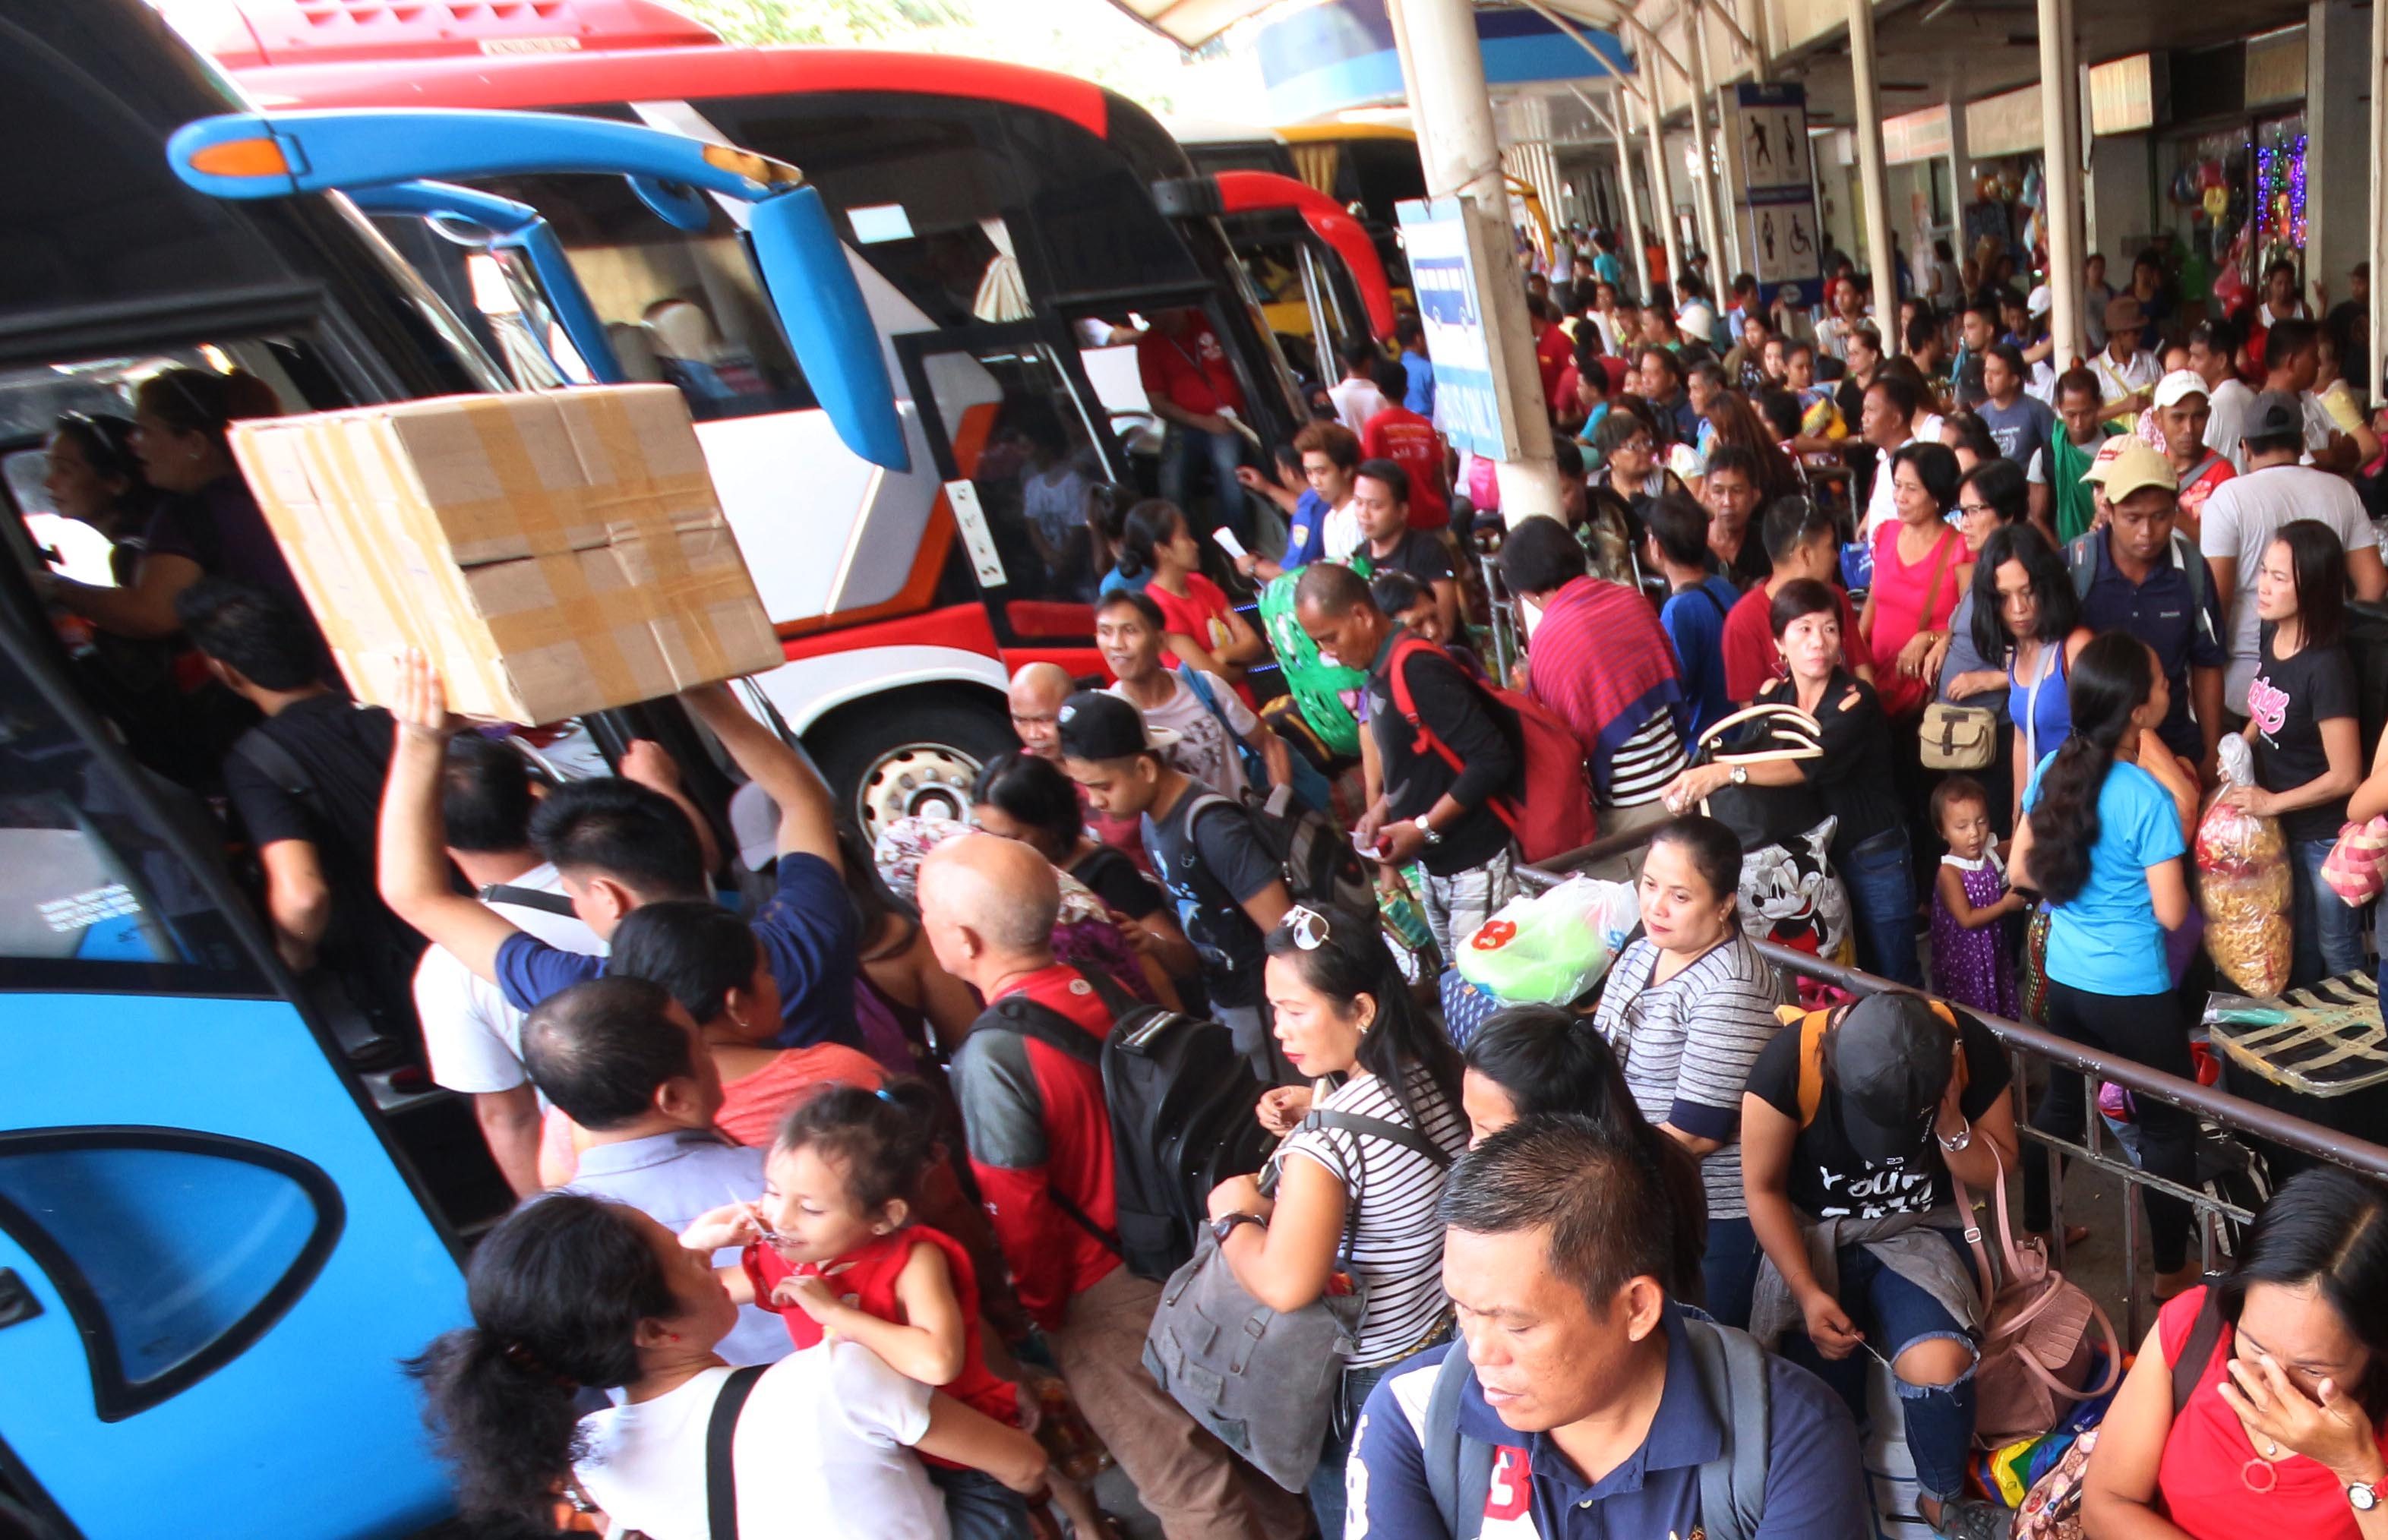 HOMEBOUND. Hundreds of southbound passengers wait to board buses at the Araneta Bus Center in Cubao, Quezon City on October 27, to avoid the last-minute rush for All Saints' Day and All Souls' Day holidays. File photo by Joel Liporada